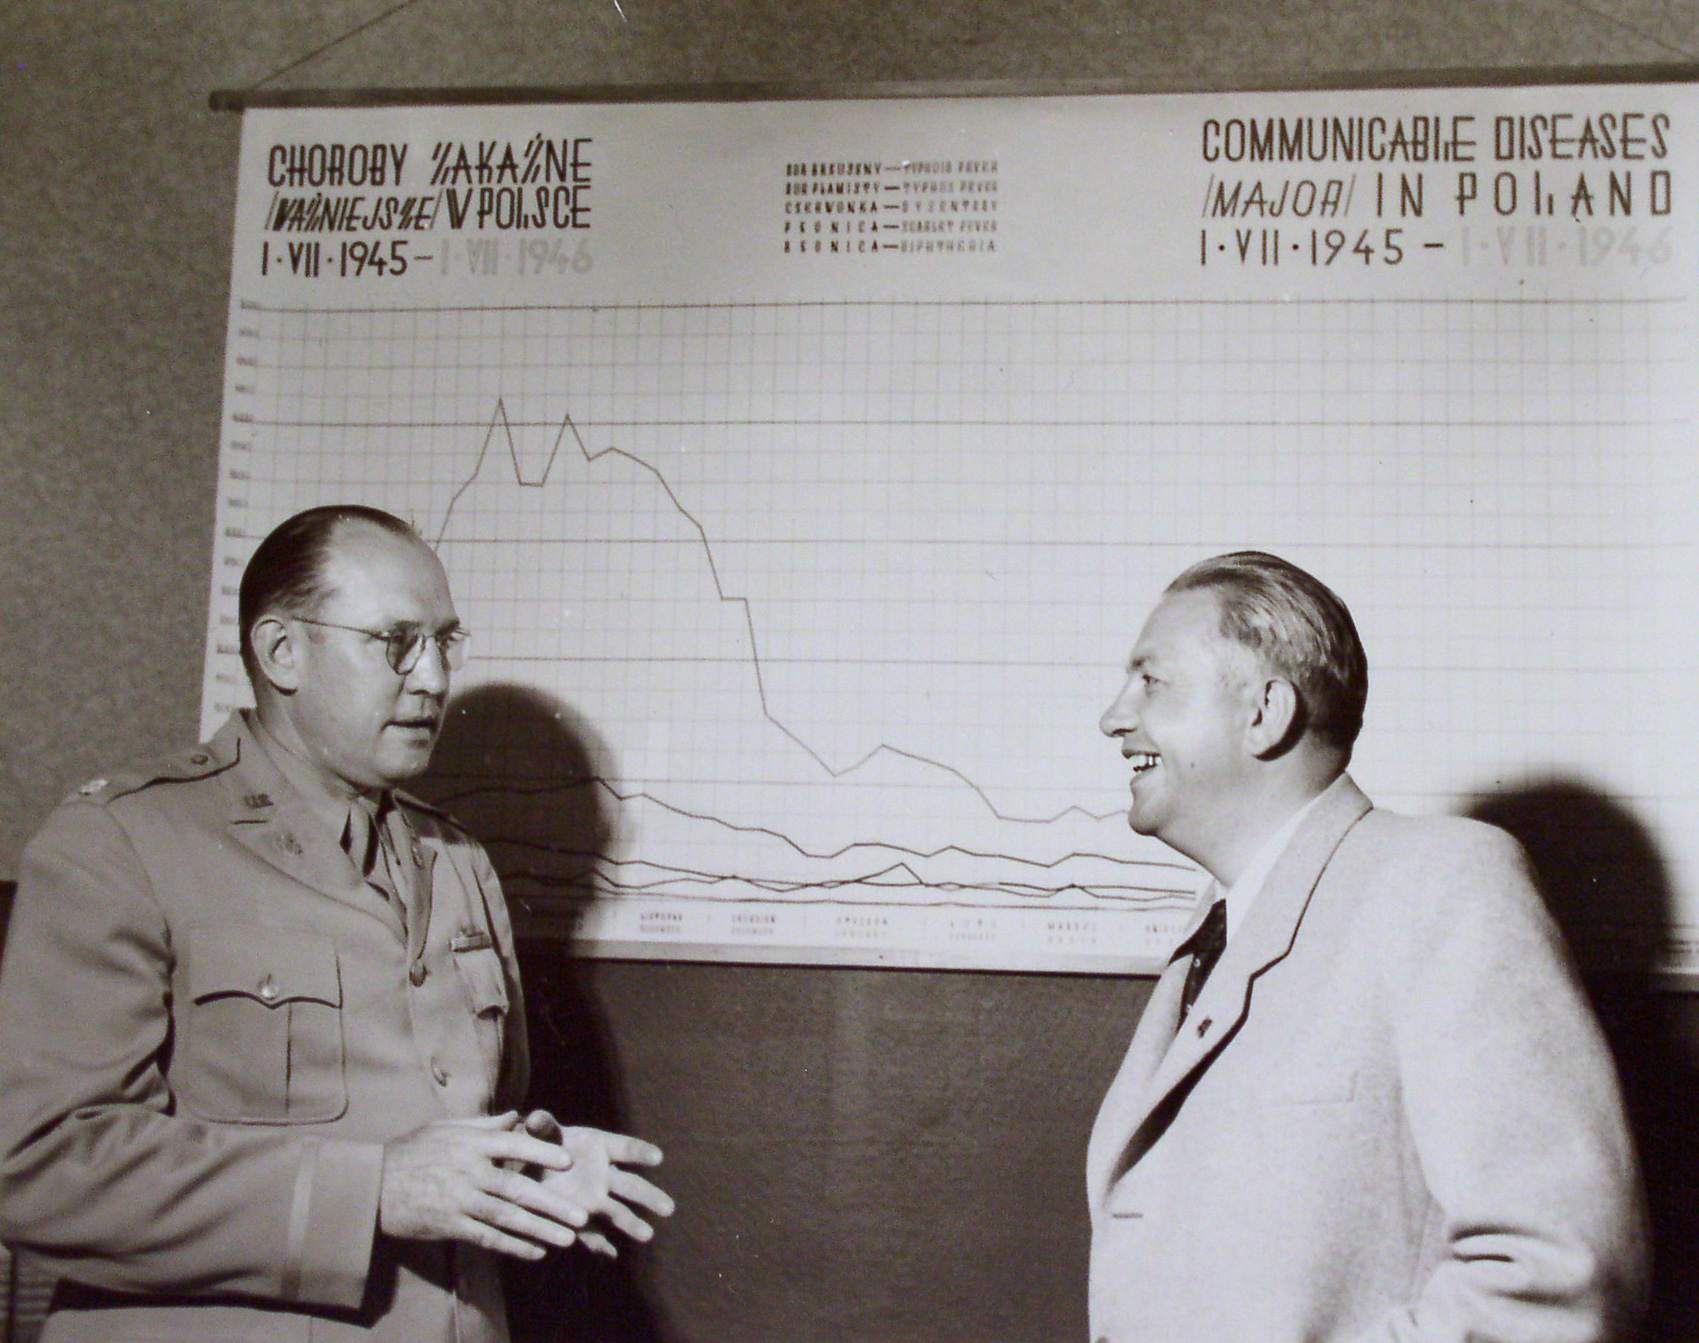 Dr H.Holle (Chief of UNRRA Medical Services) & Dr Franciszek Litwin (Minister of Health), Poland [1946] (Credit: UNRRA/ 4593, UNited Nations Archives and Records Management.)